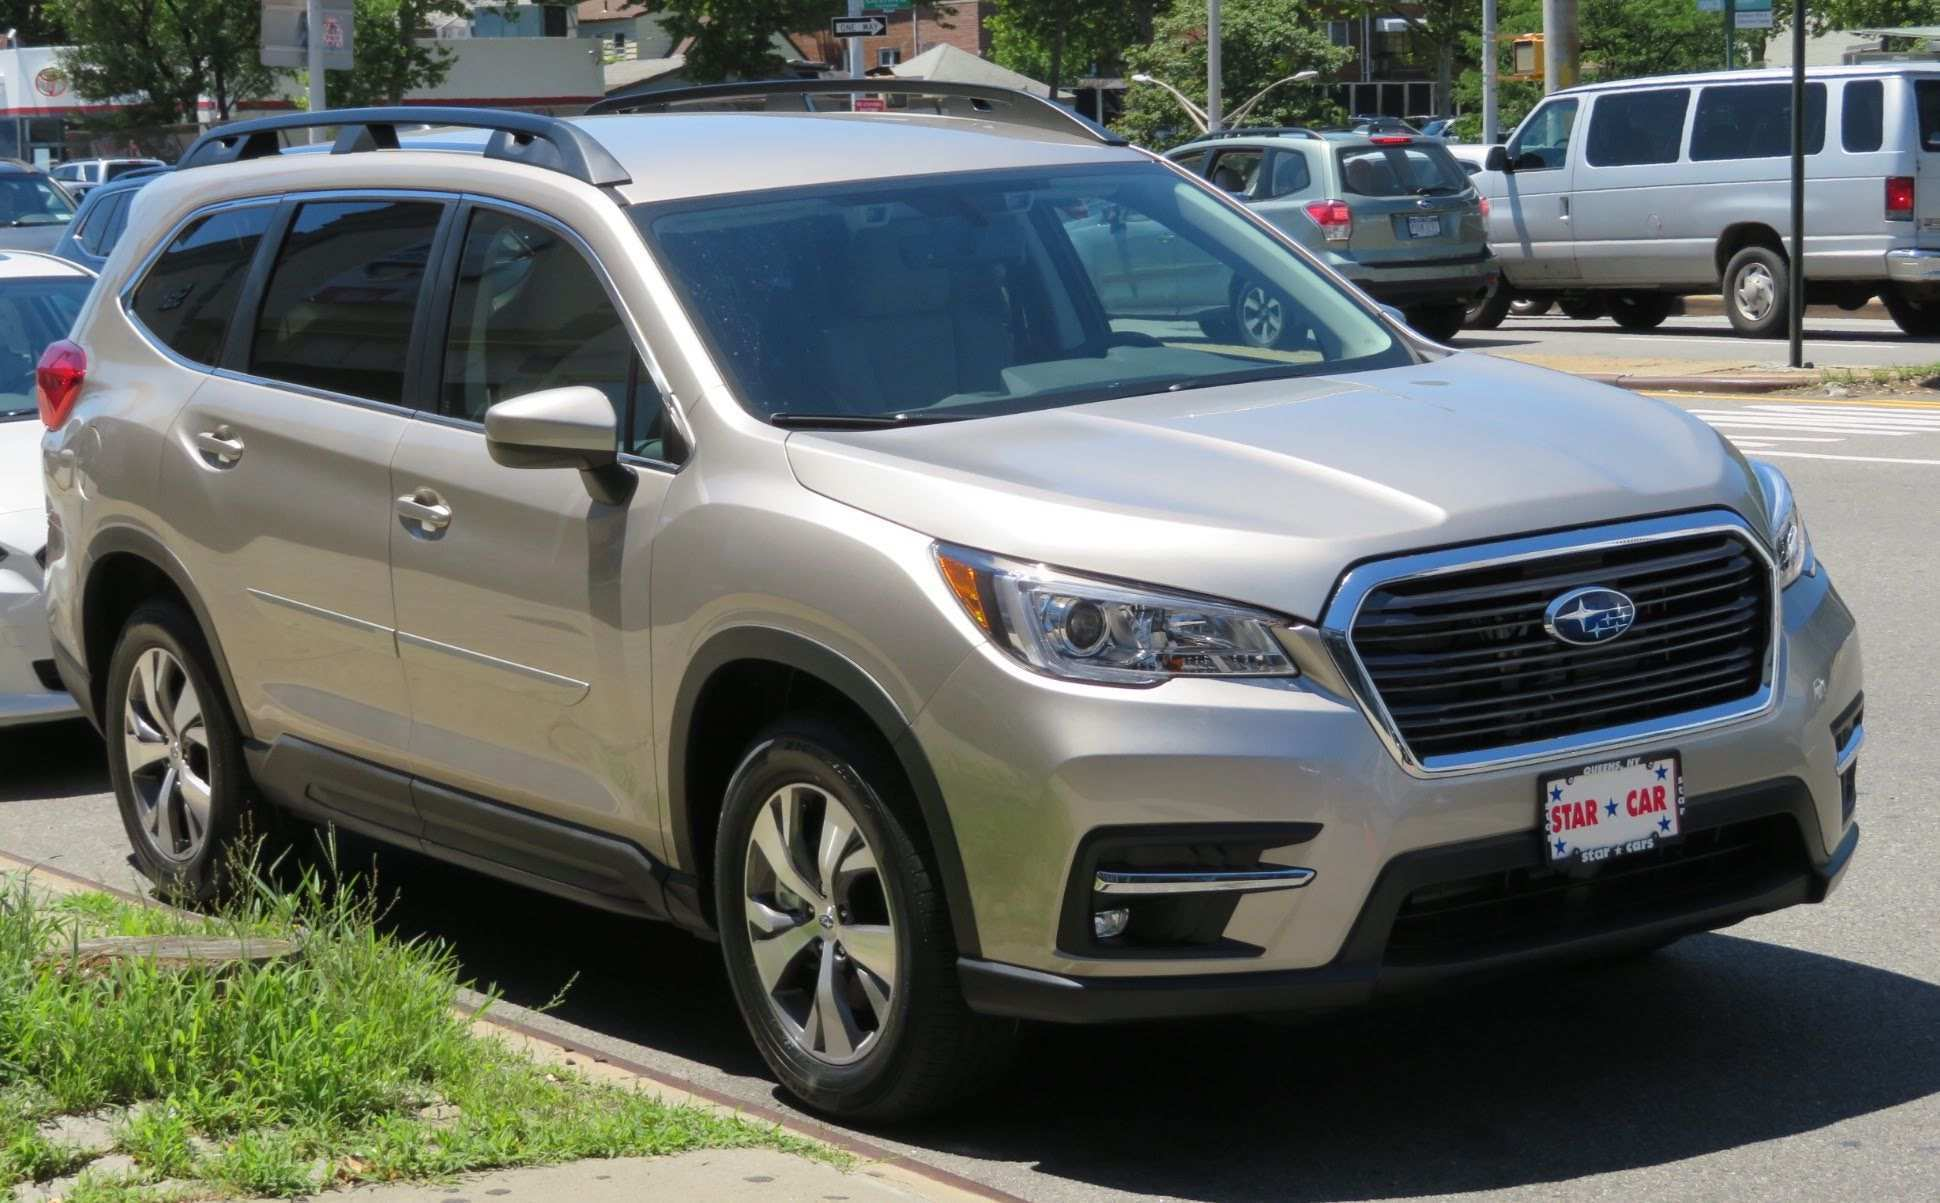 84 New 2020 Subaru Ascent Exterior Rumors for 2020 Subaru Ascent Exterior